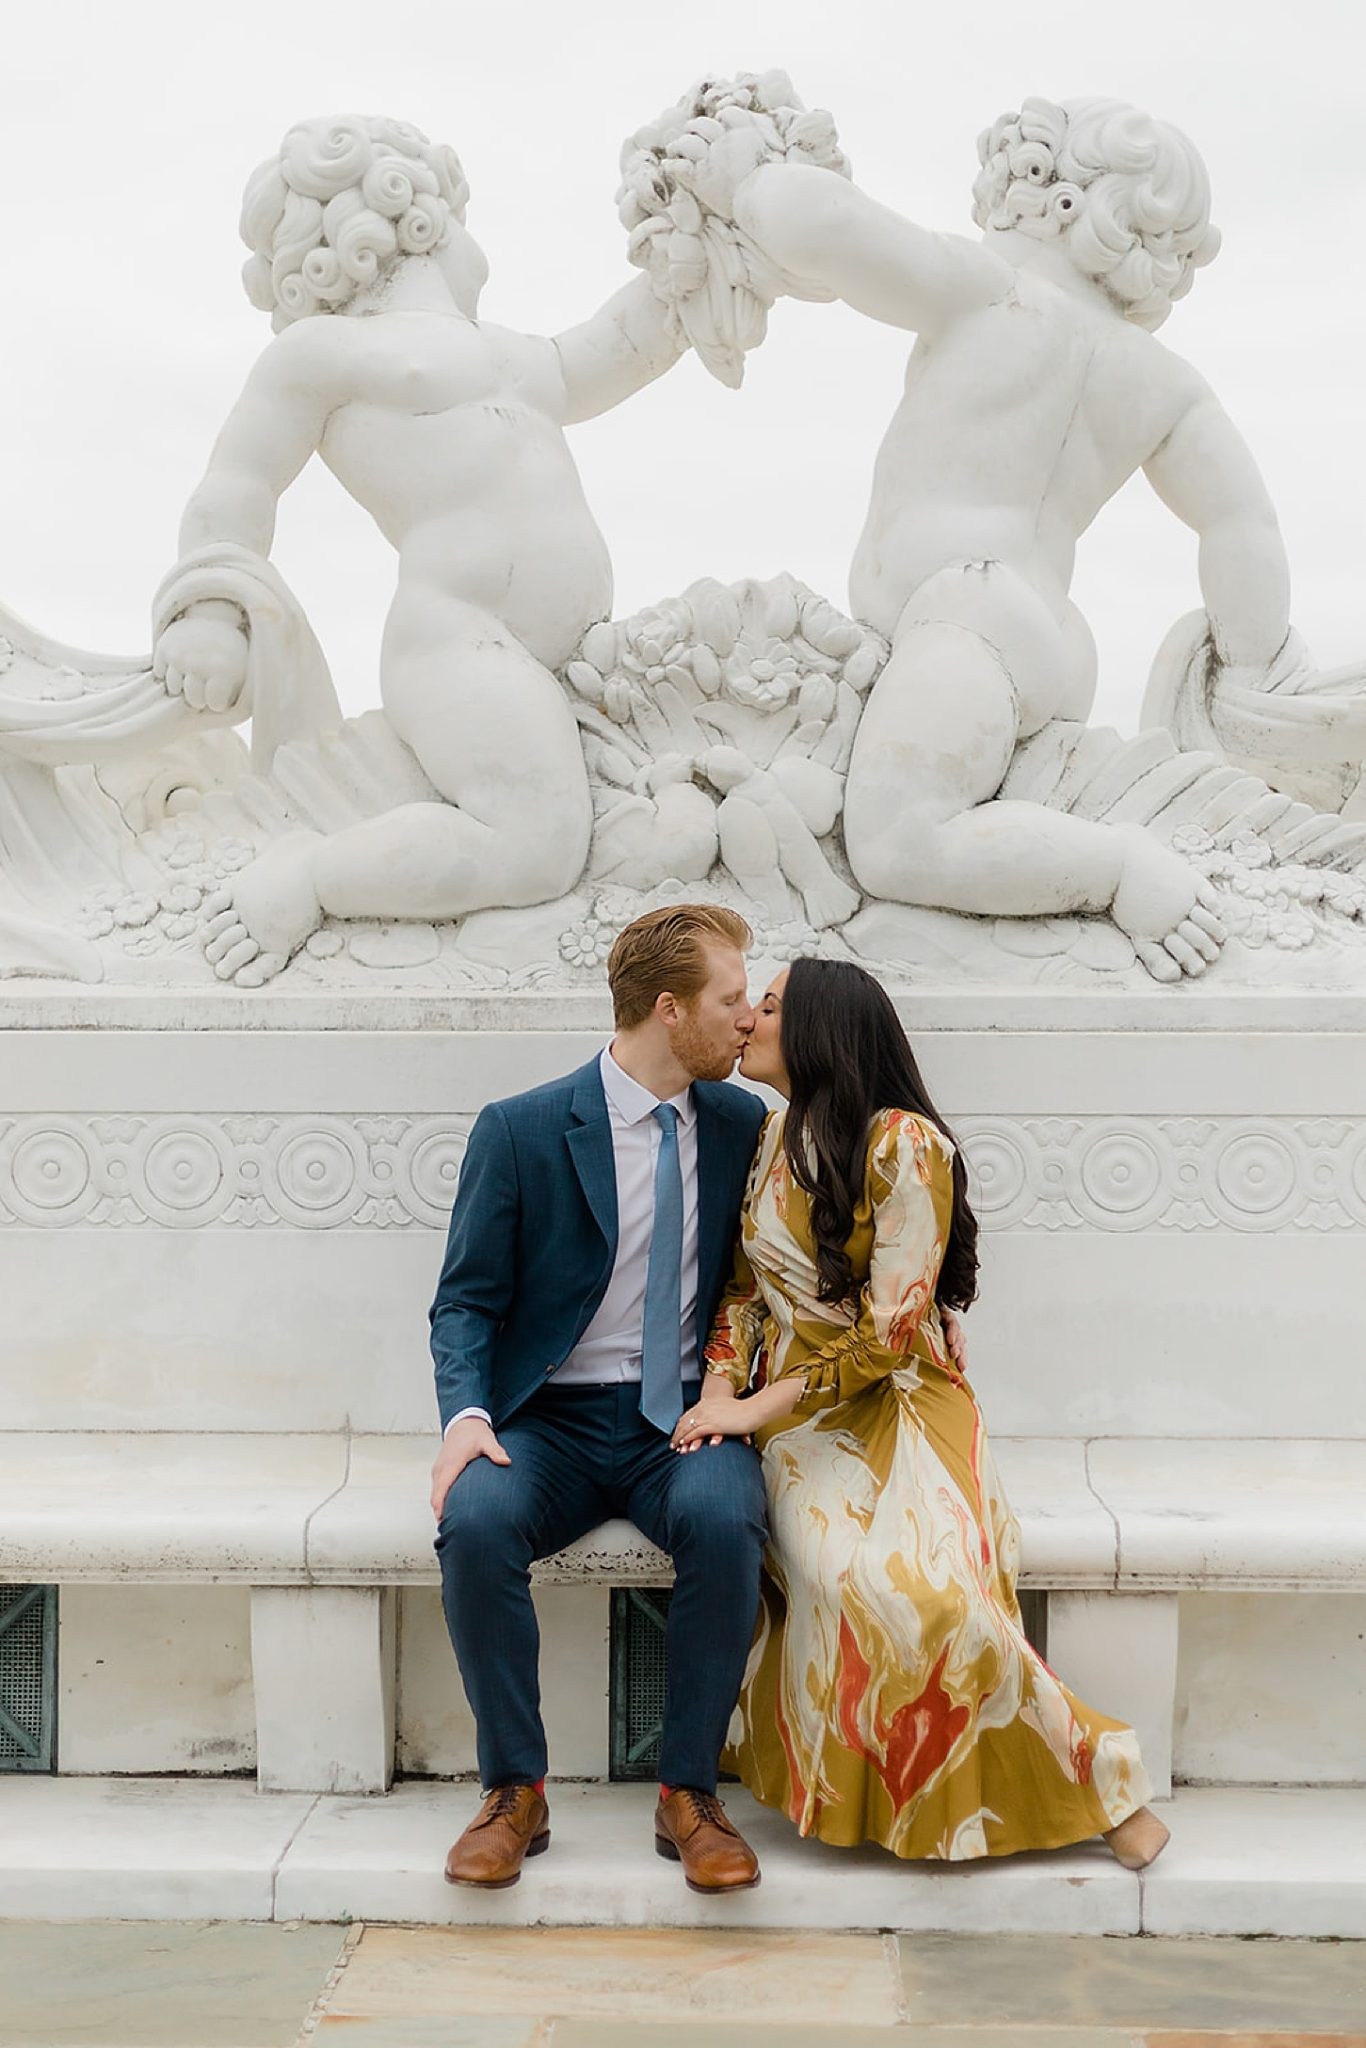 Alfred I. DuPont Hospital for Children Mansion Grounds Engagement Photography by Magdalena Studios 0013 scaled